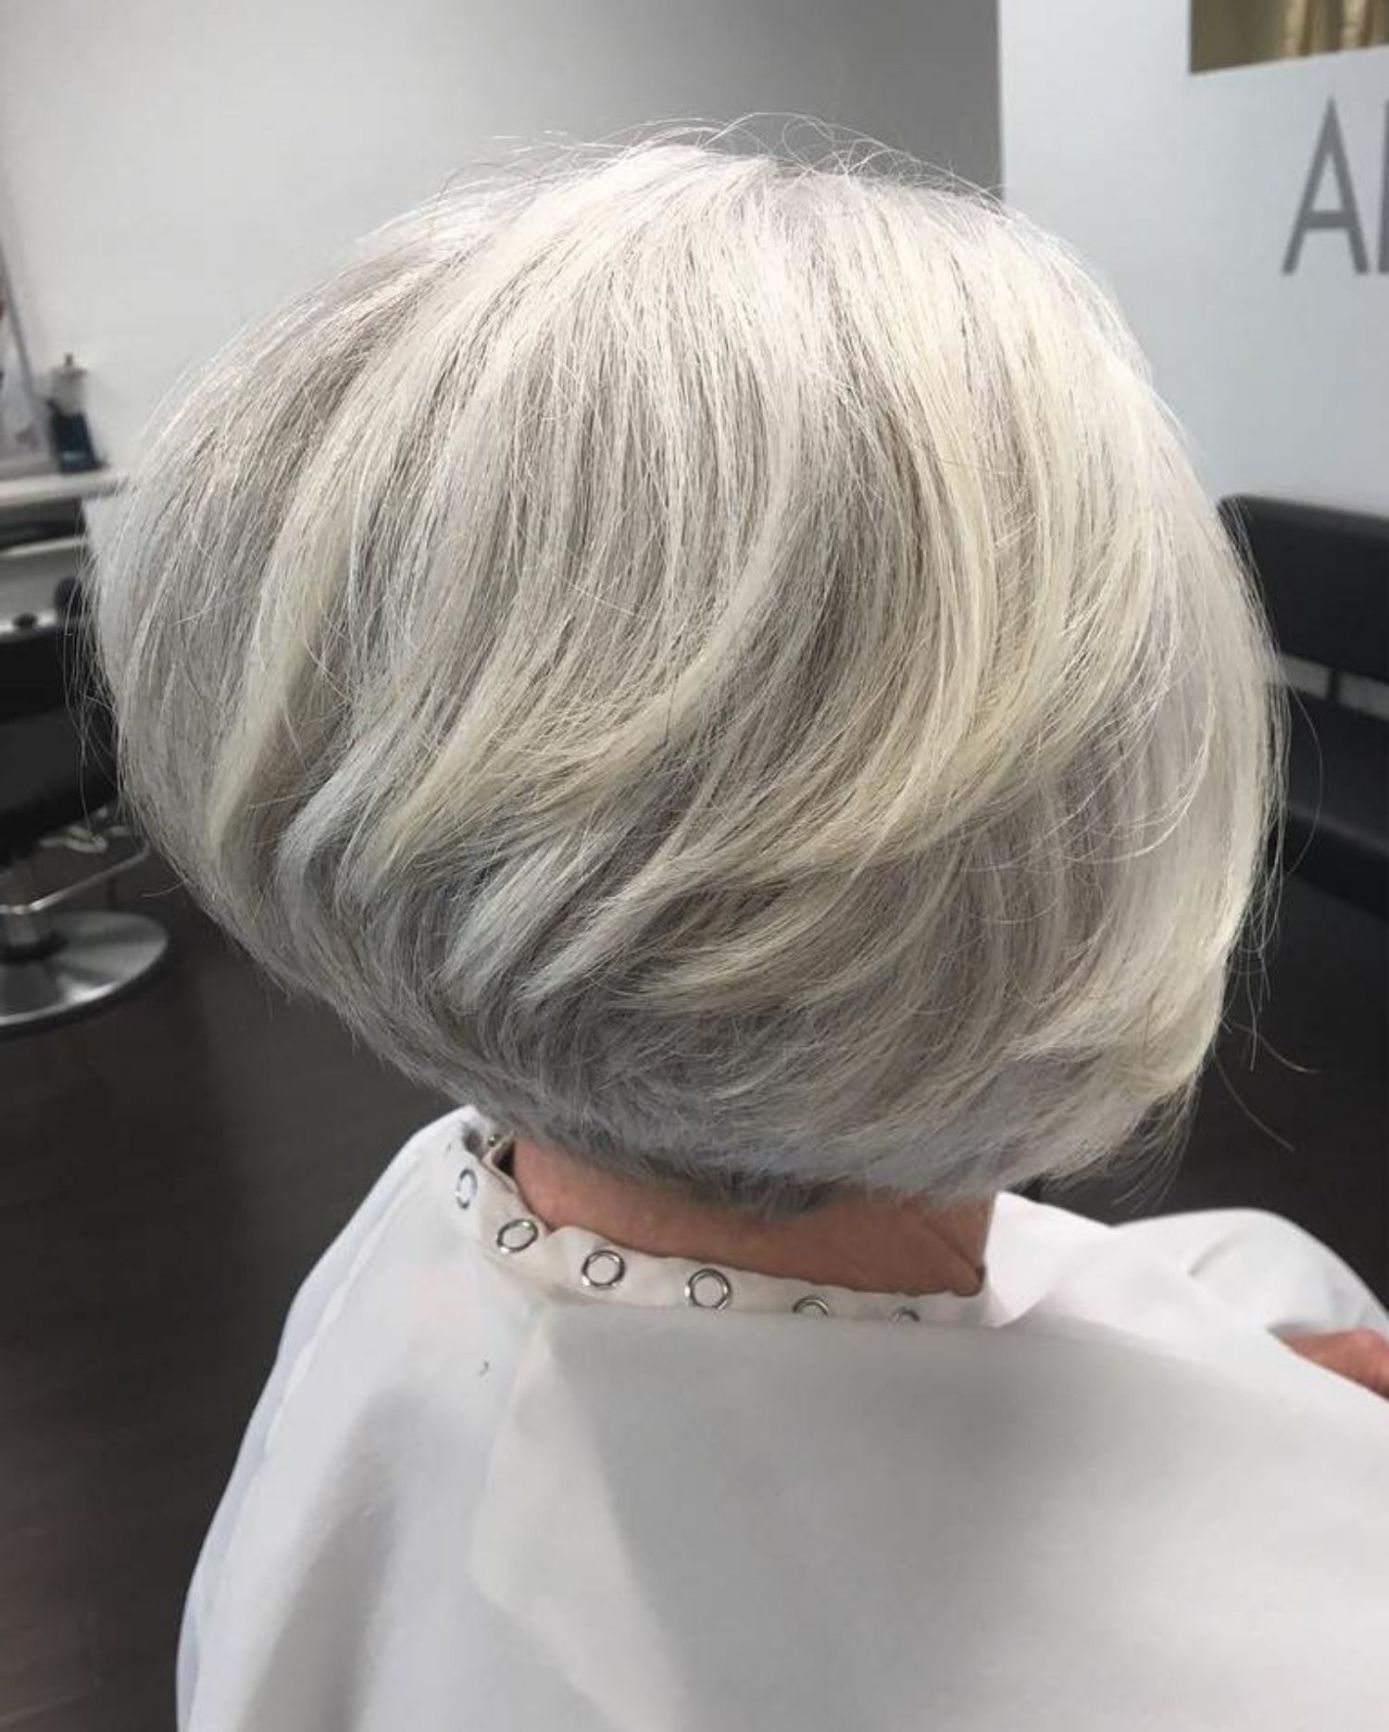 The Best Hairstyles And Haircuts For Women Over 70 Thick Hair Styles Cool Hairstyles Bob Hairstyles For Thick